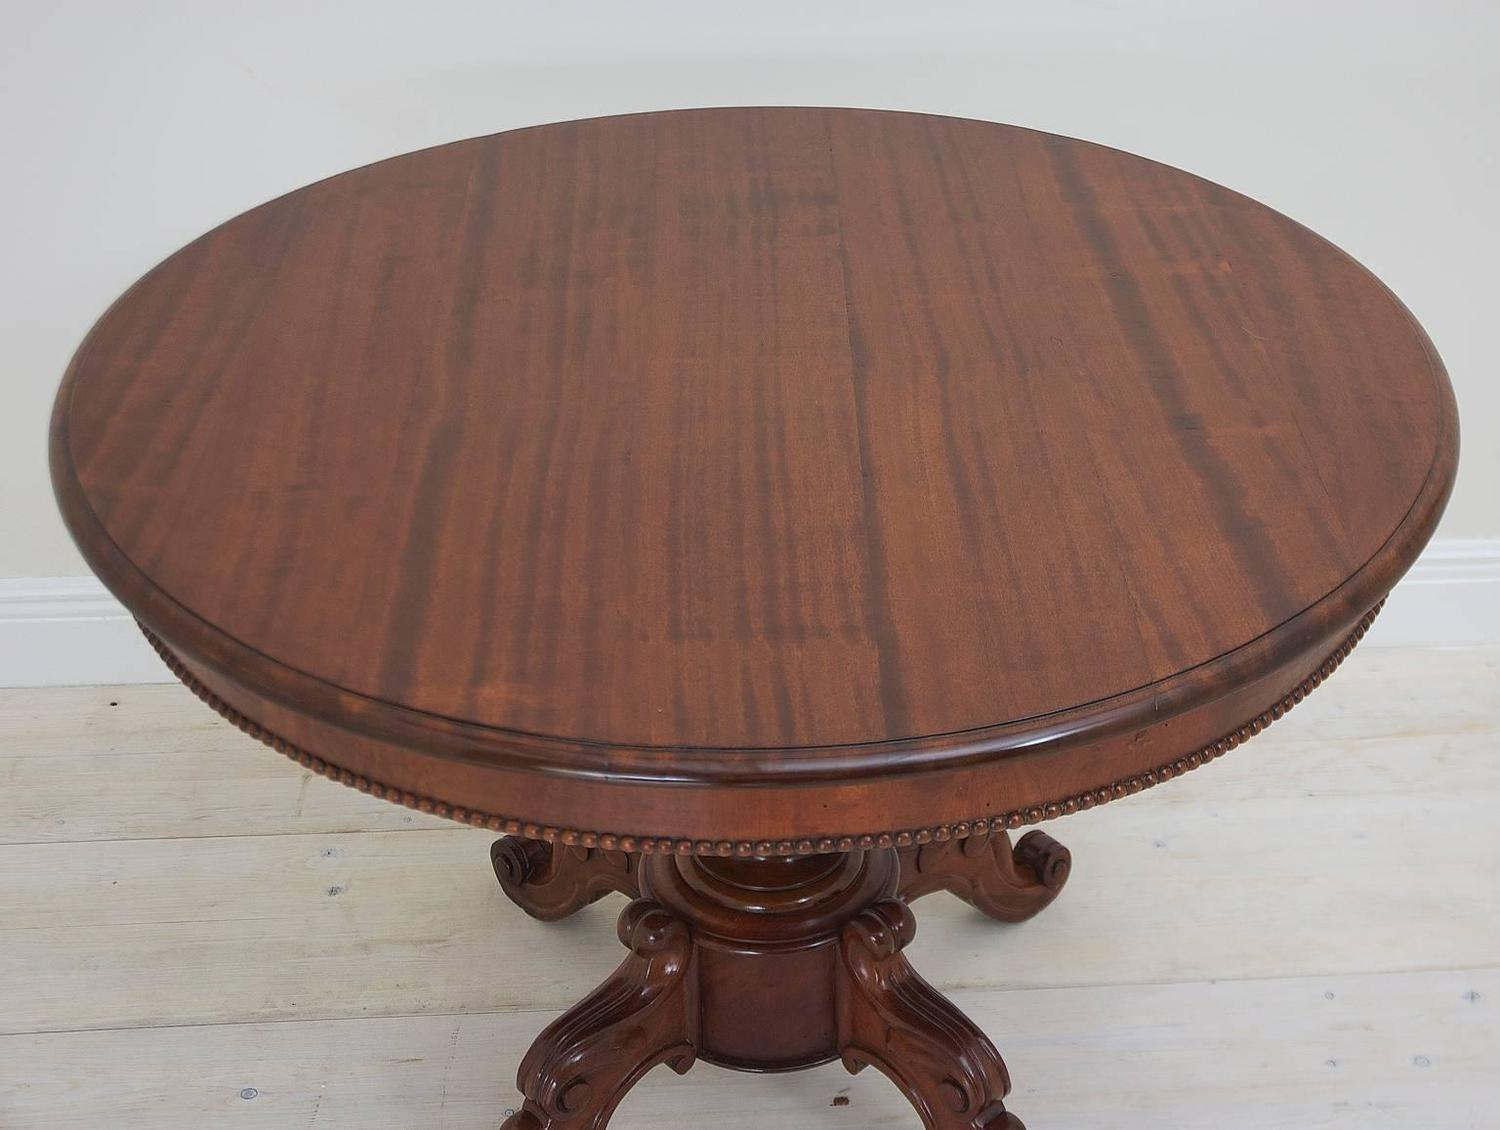 Antique French Louis Philippe Round Center Pedestal Table In Mahogany